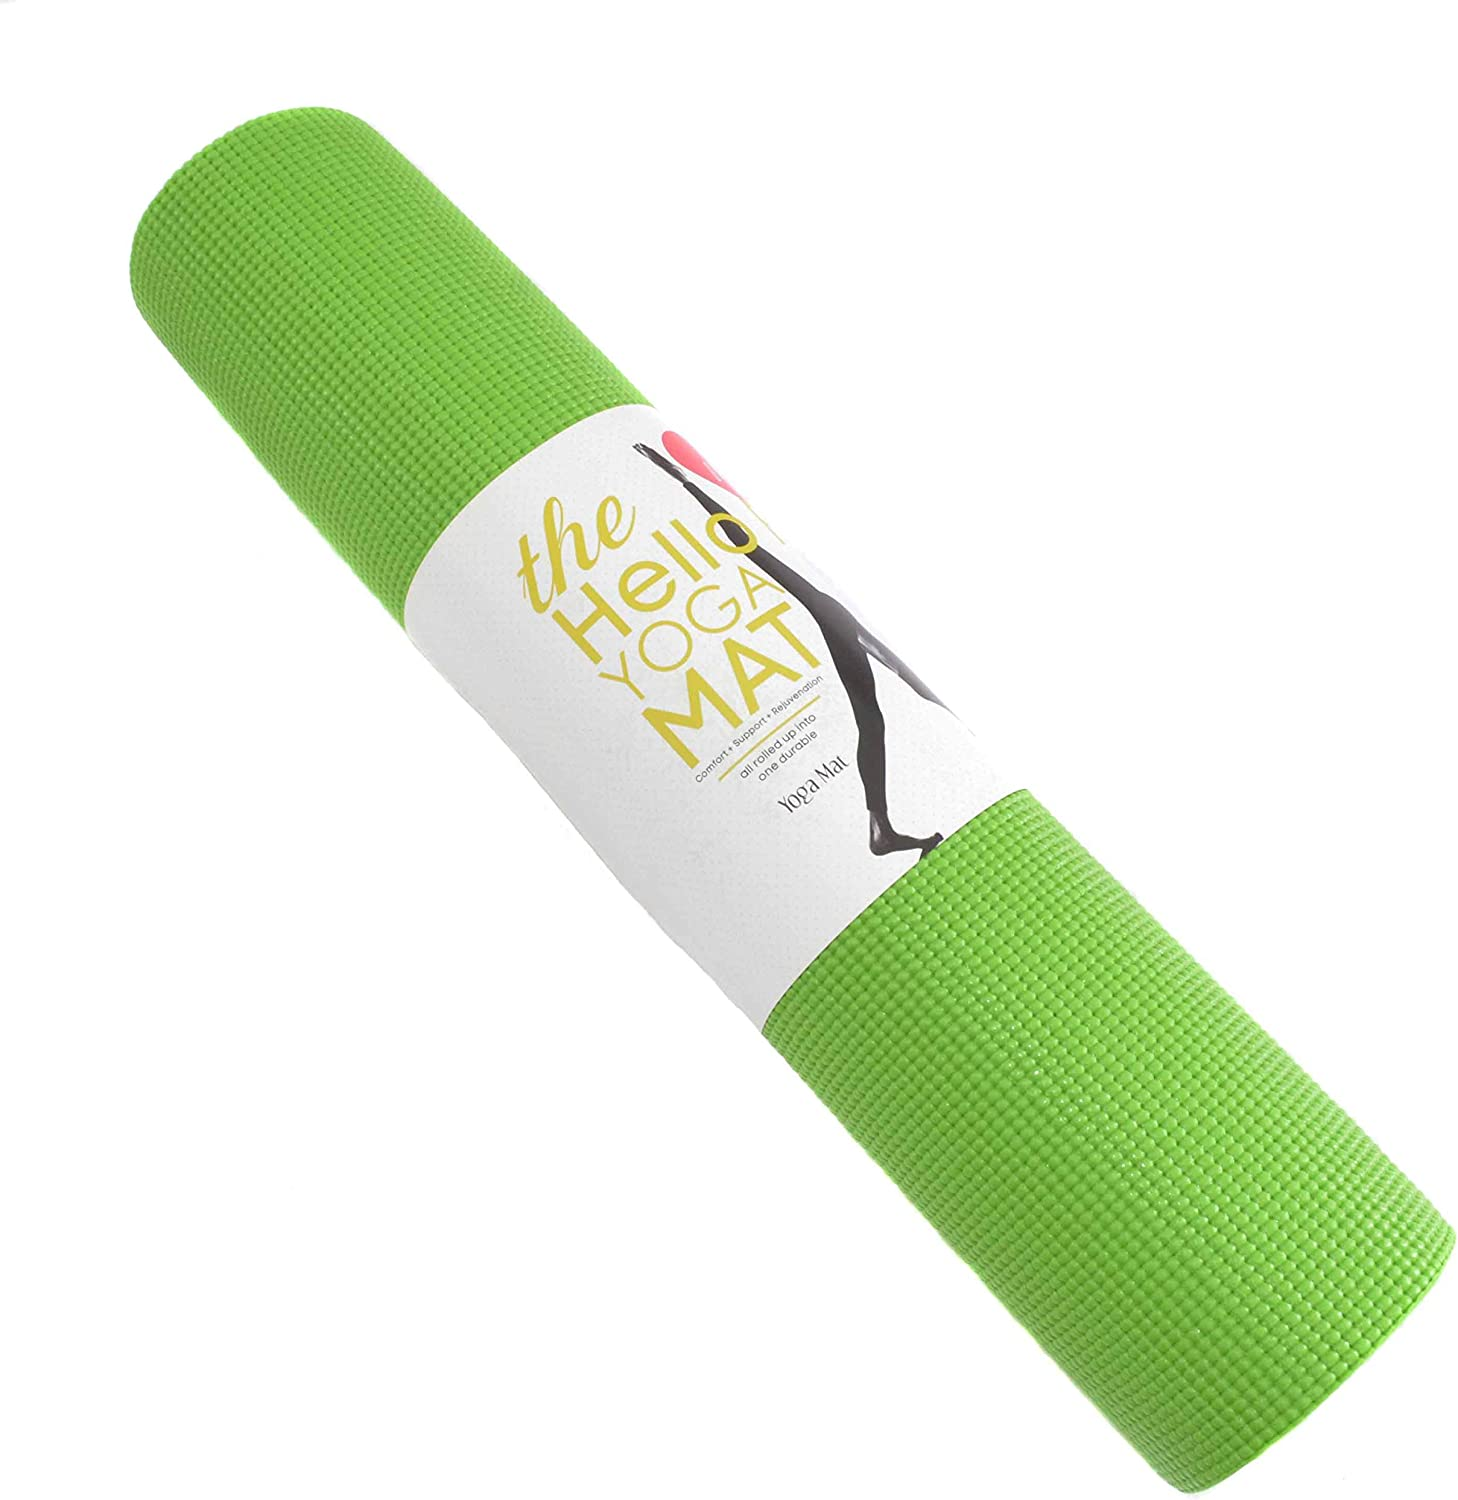 Hello Fit - Thick Yoga Mats - Economy Studio 10-Pack - Non-Slip - Lead and Latex Free - 74 x 24 x ¼ Inches